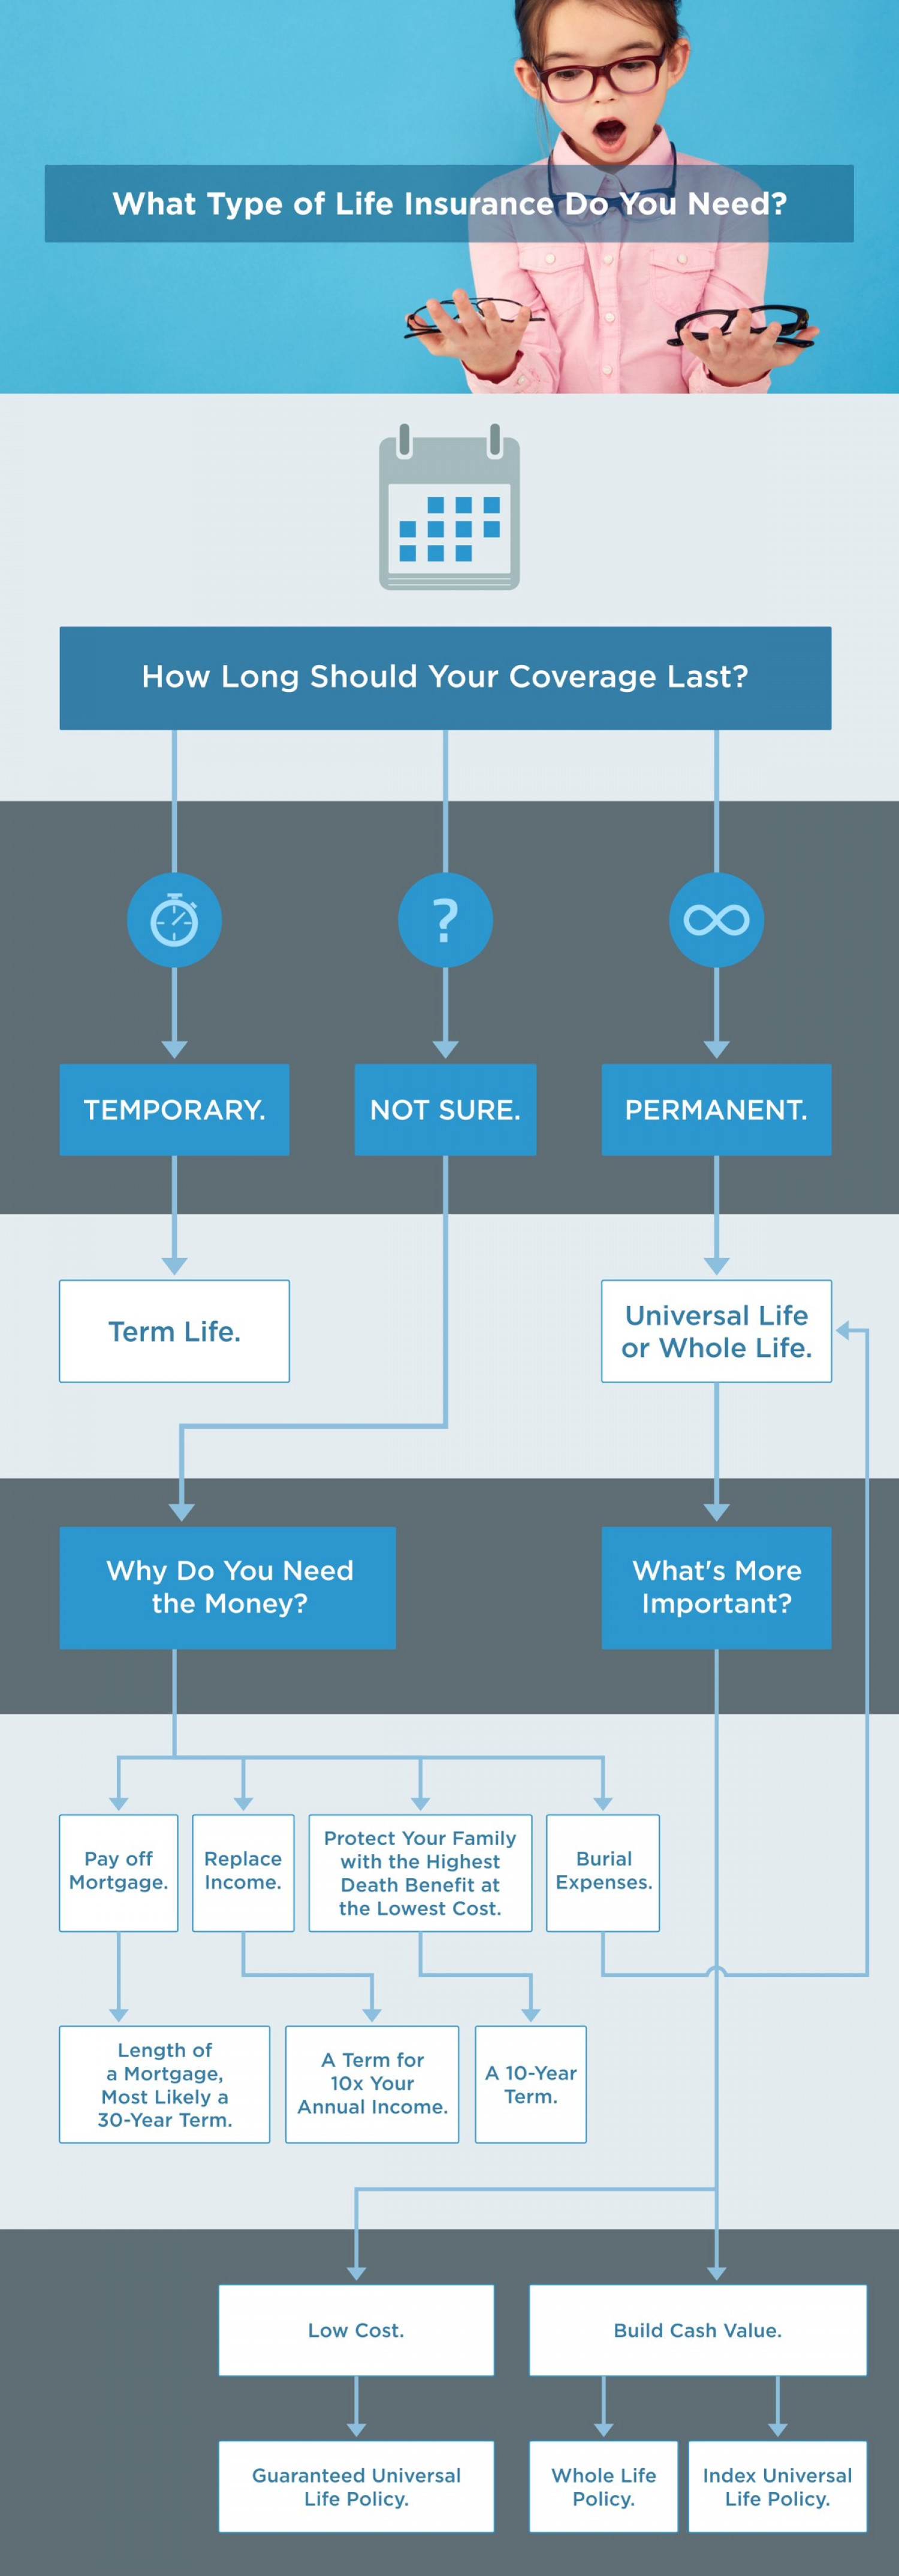 Types of life insurance flow chart visual types of life insurance flow chart infographic geenschuldenfo Gallery